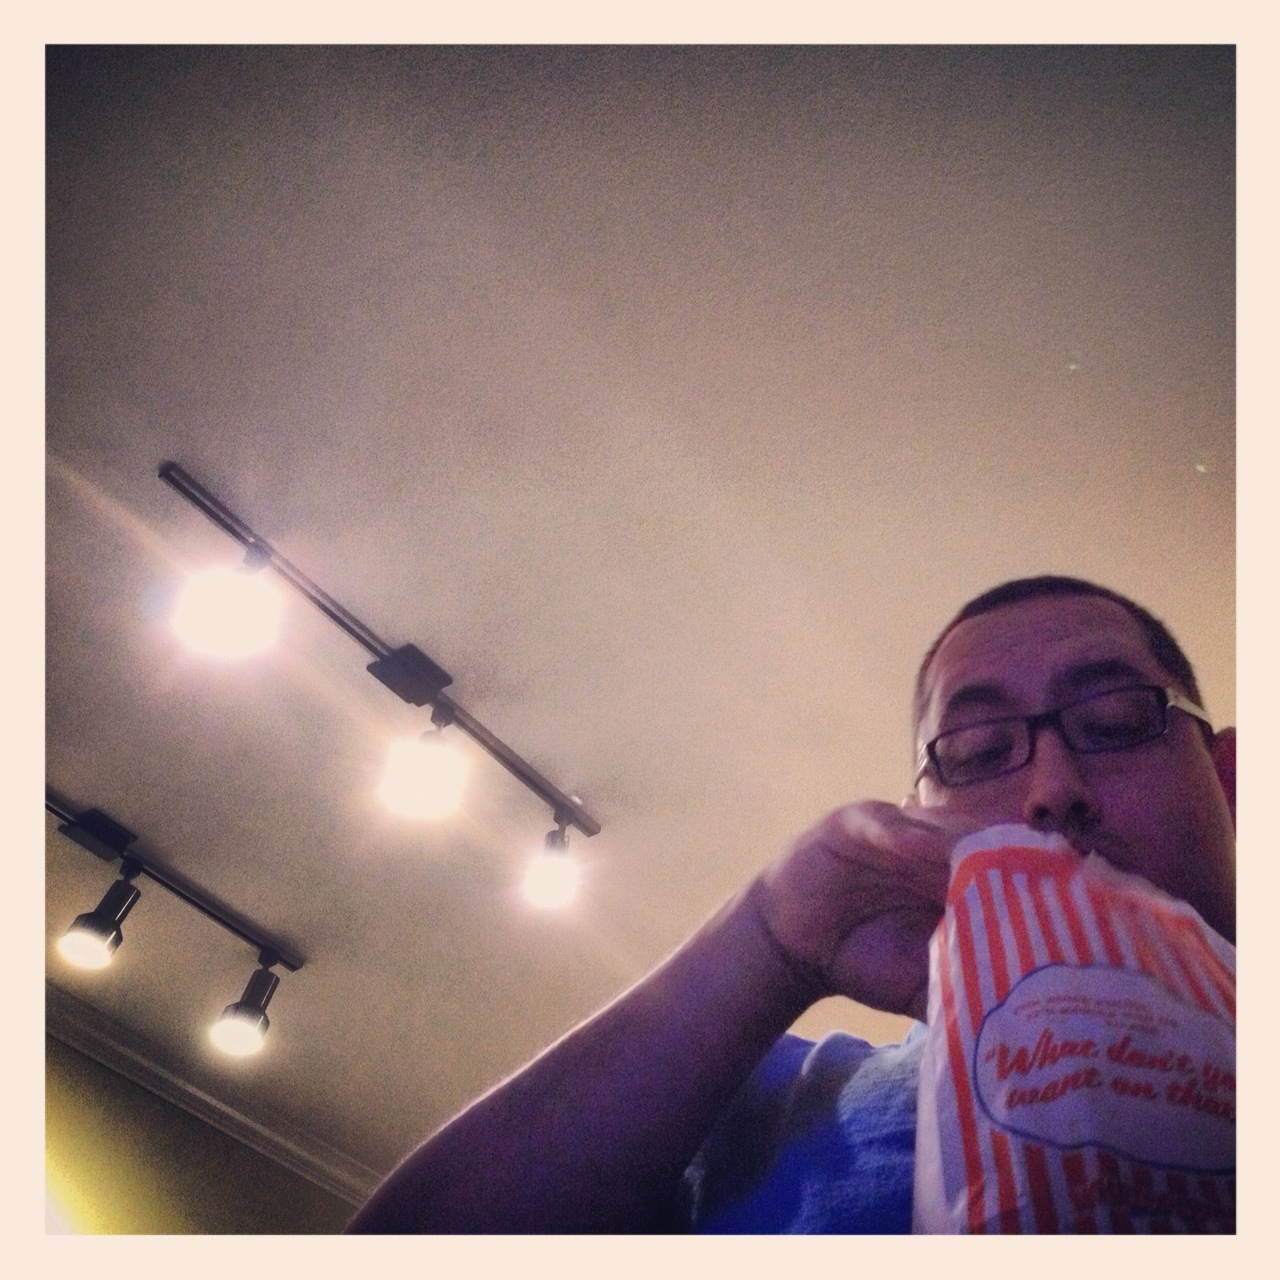 Chivo and I just got back from Whataburger and a late afternoon screening of Looper. If you haven't had a chance to see it - I highly recommend that you do so that we can talk about it.